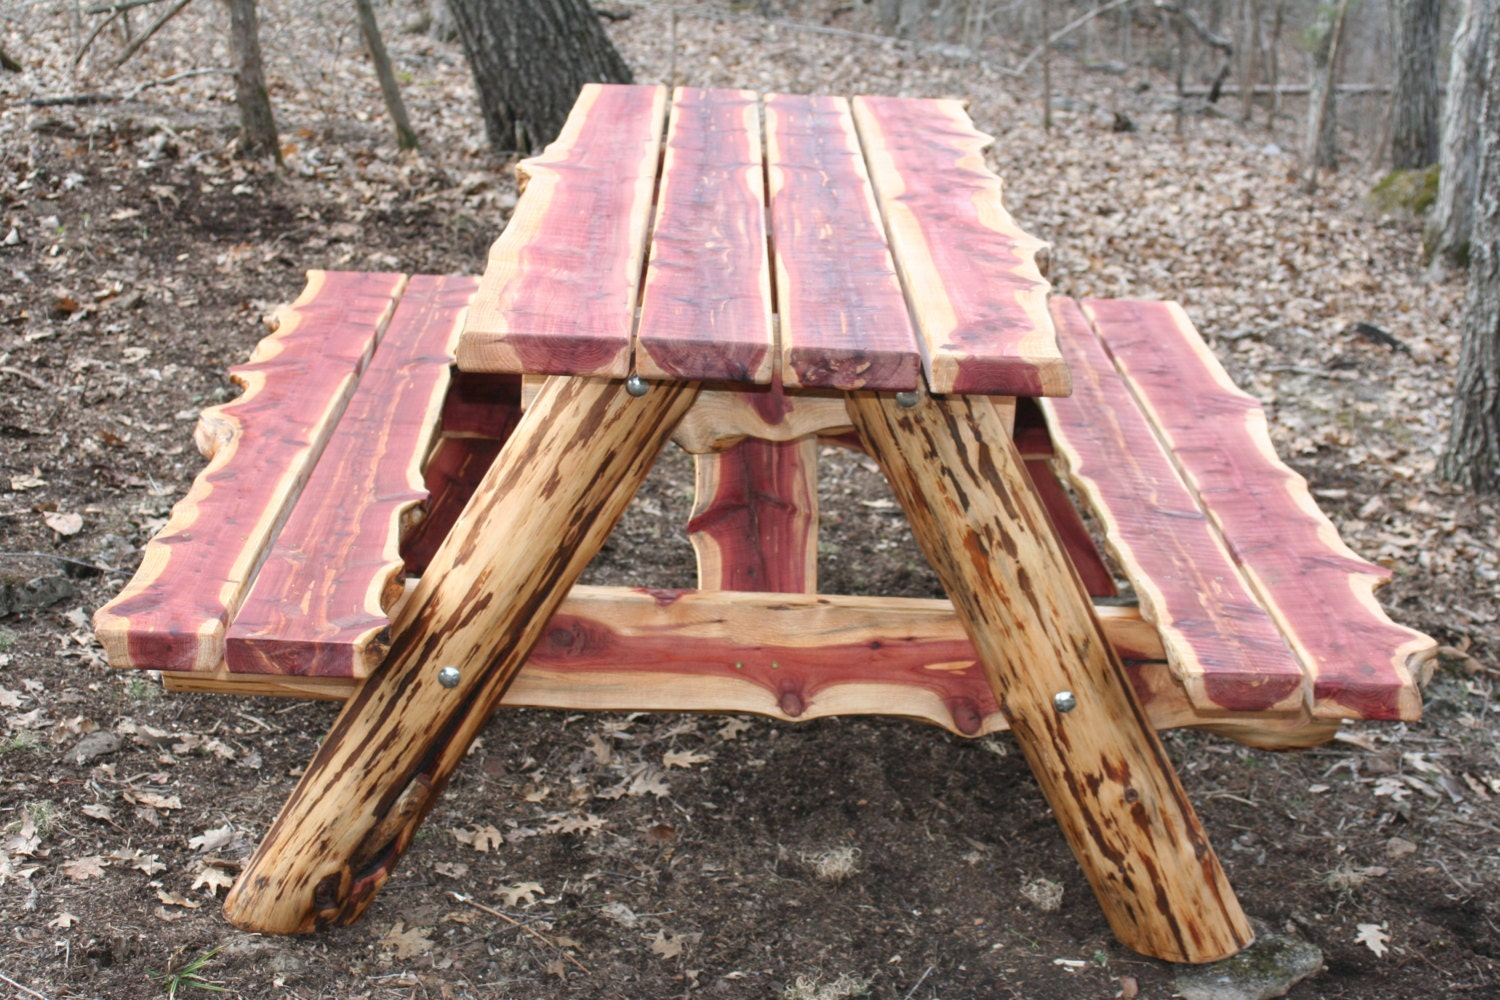 Ft live edge eastern red cedar picnic table by povertygulch